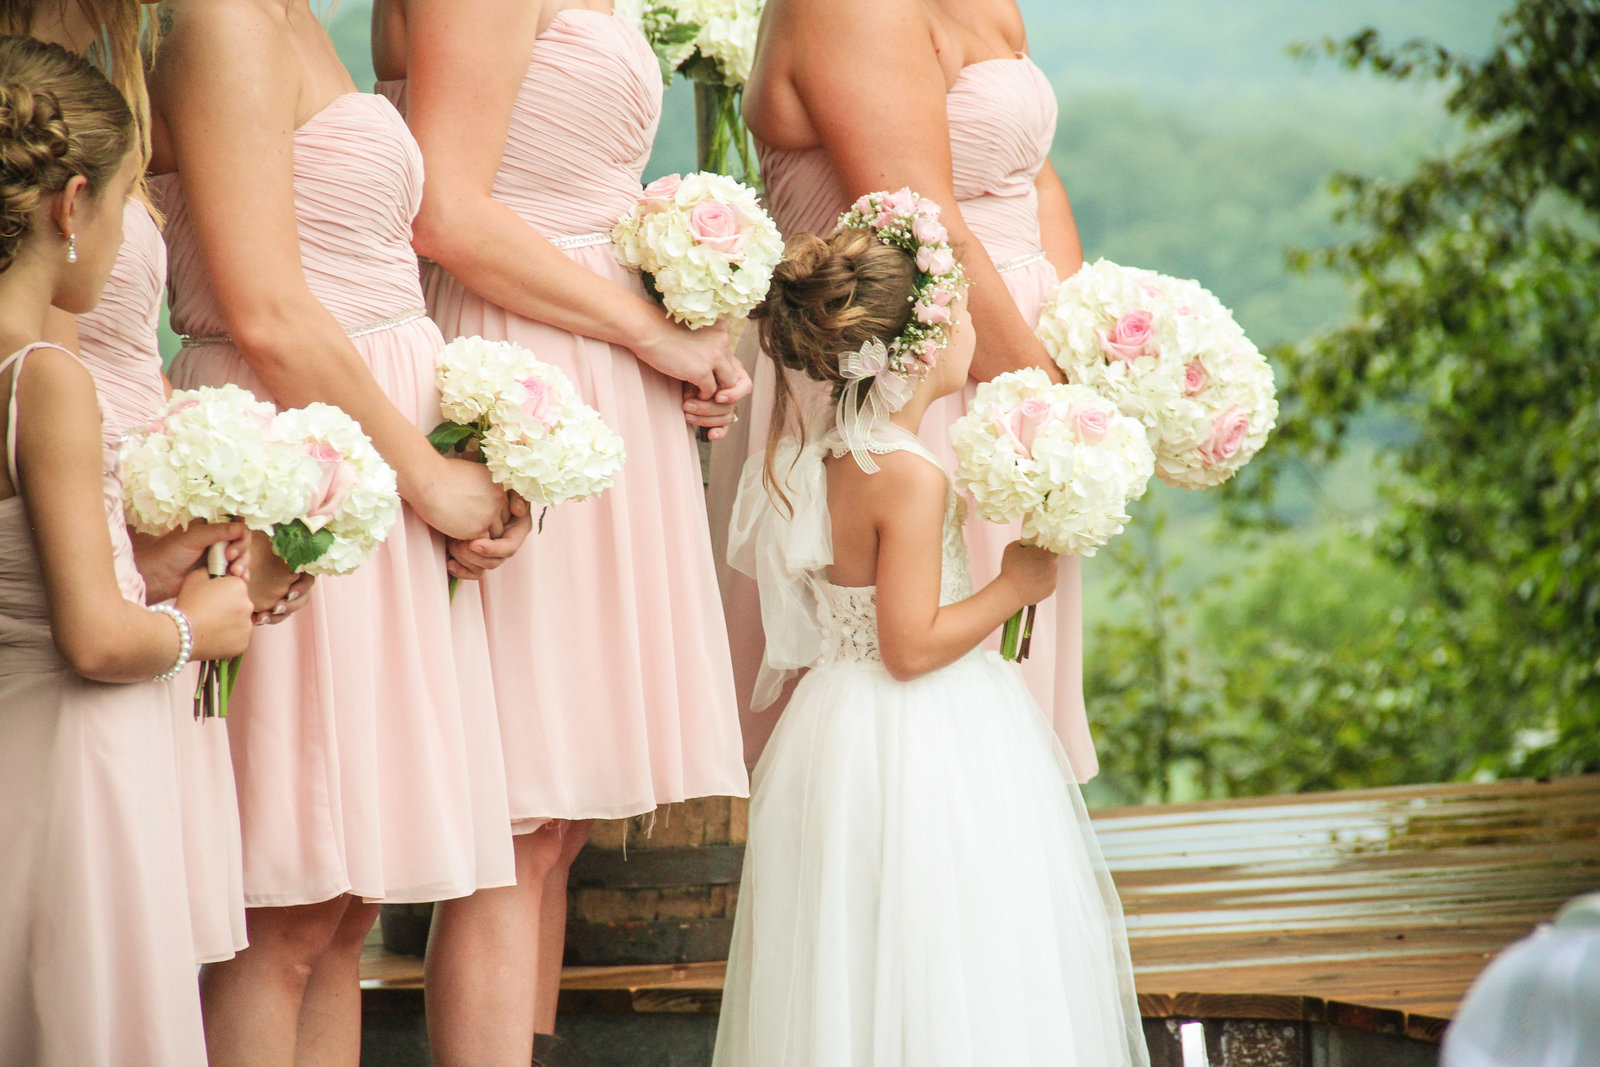 Nashville Wedding Photography | Bridal Party Posing Ideas